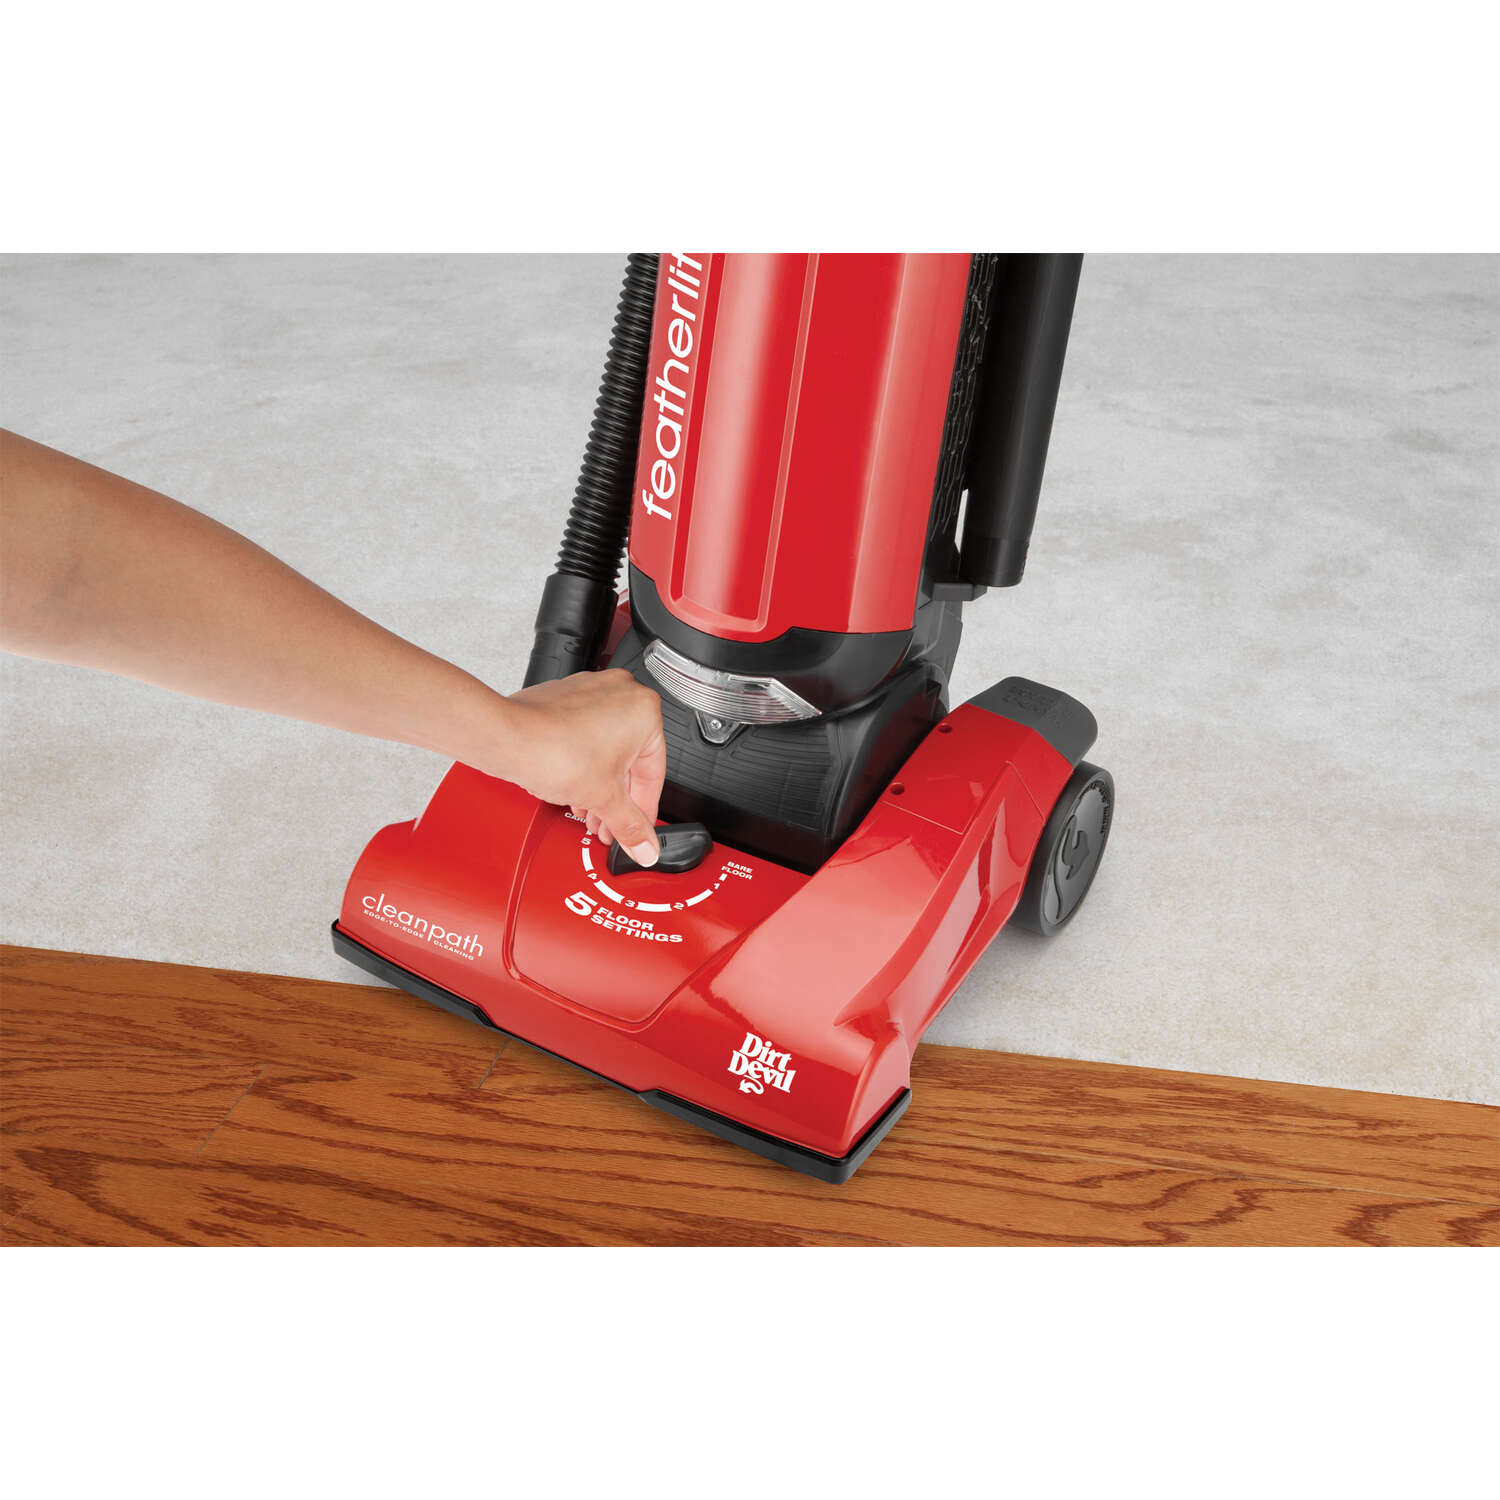 Dirt Devil  Featherlite  Bagged  Upright Vacuum  10 amps Filter Bag  Red